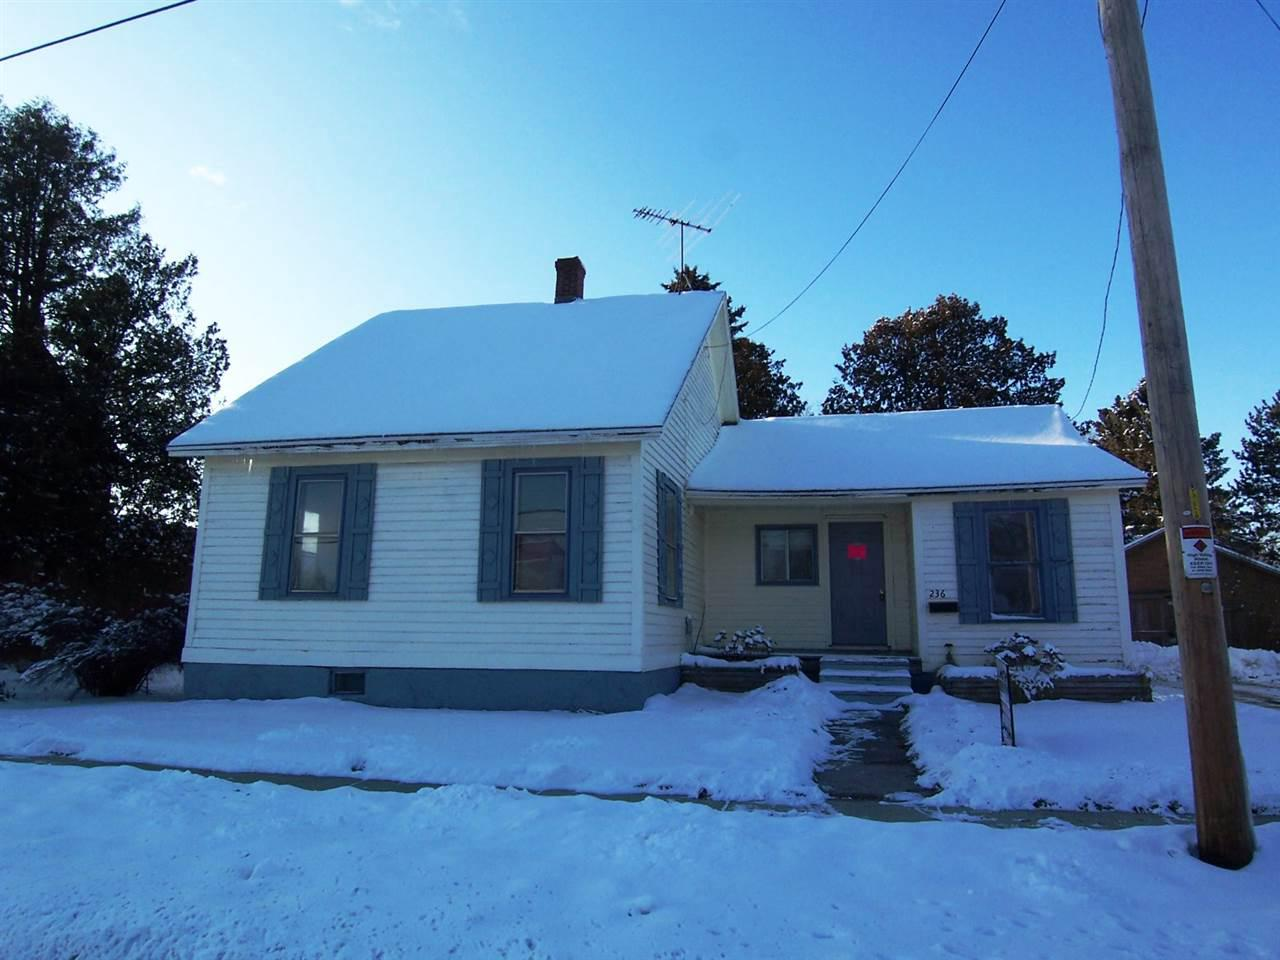 WHEDA foreclosure! Ranch home featuring 3 bedrooms and 1 full bath, spacious eat-in kitchen, living room and a family room, enclosed back porch, full basement, detached garage, and a large open backyard.